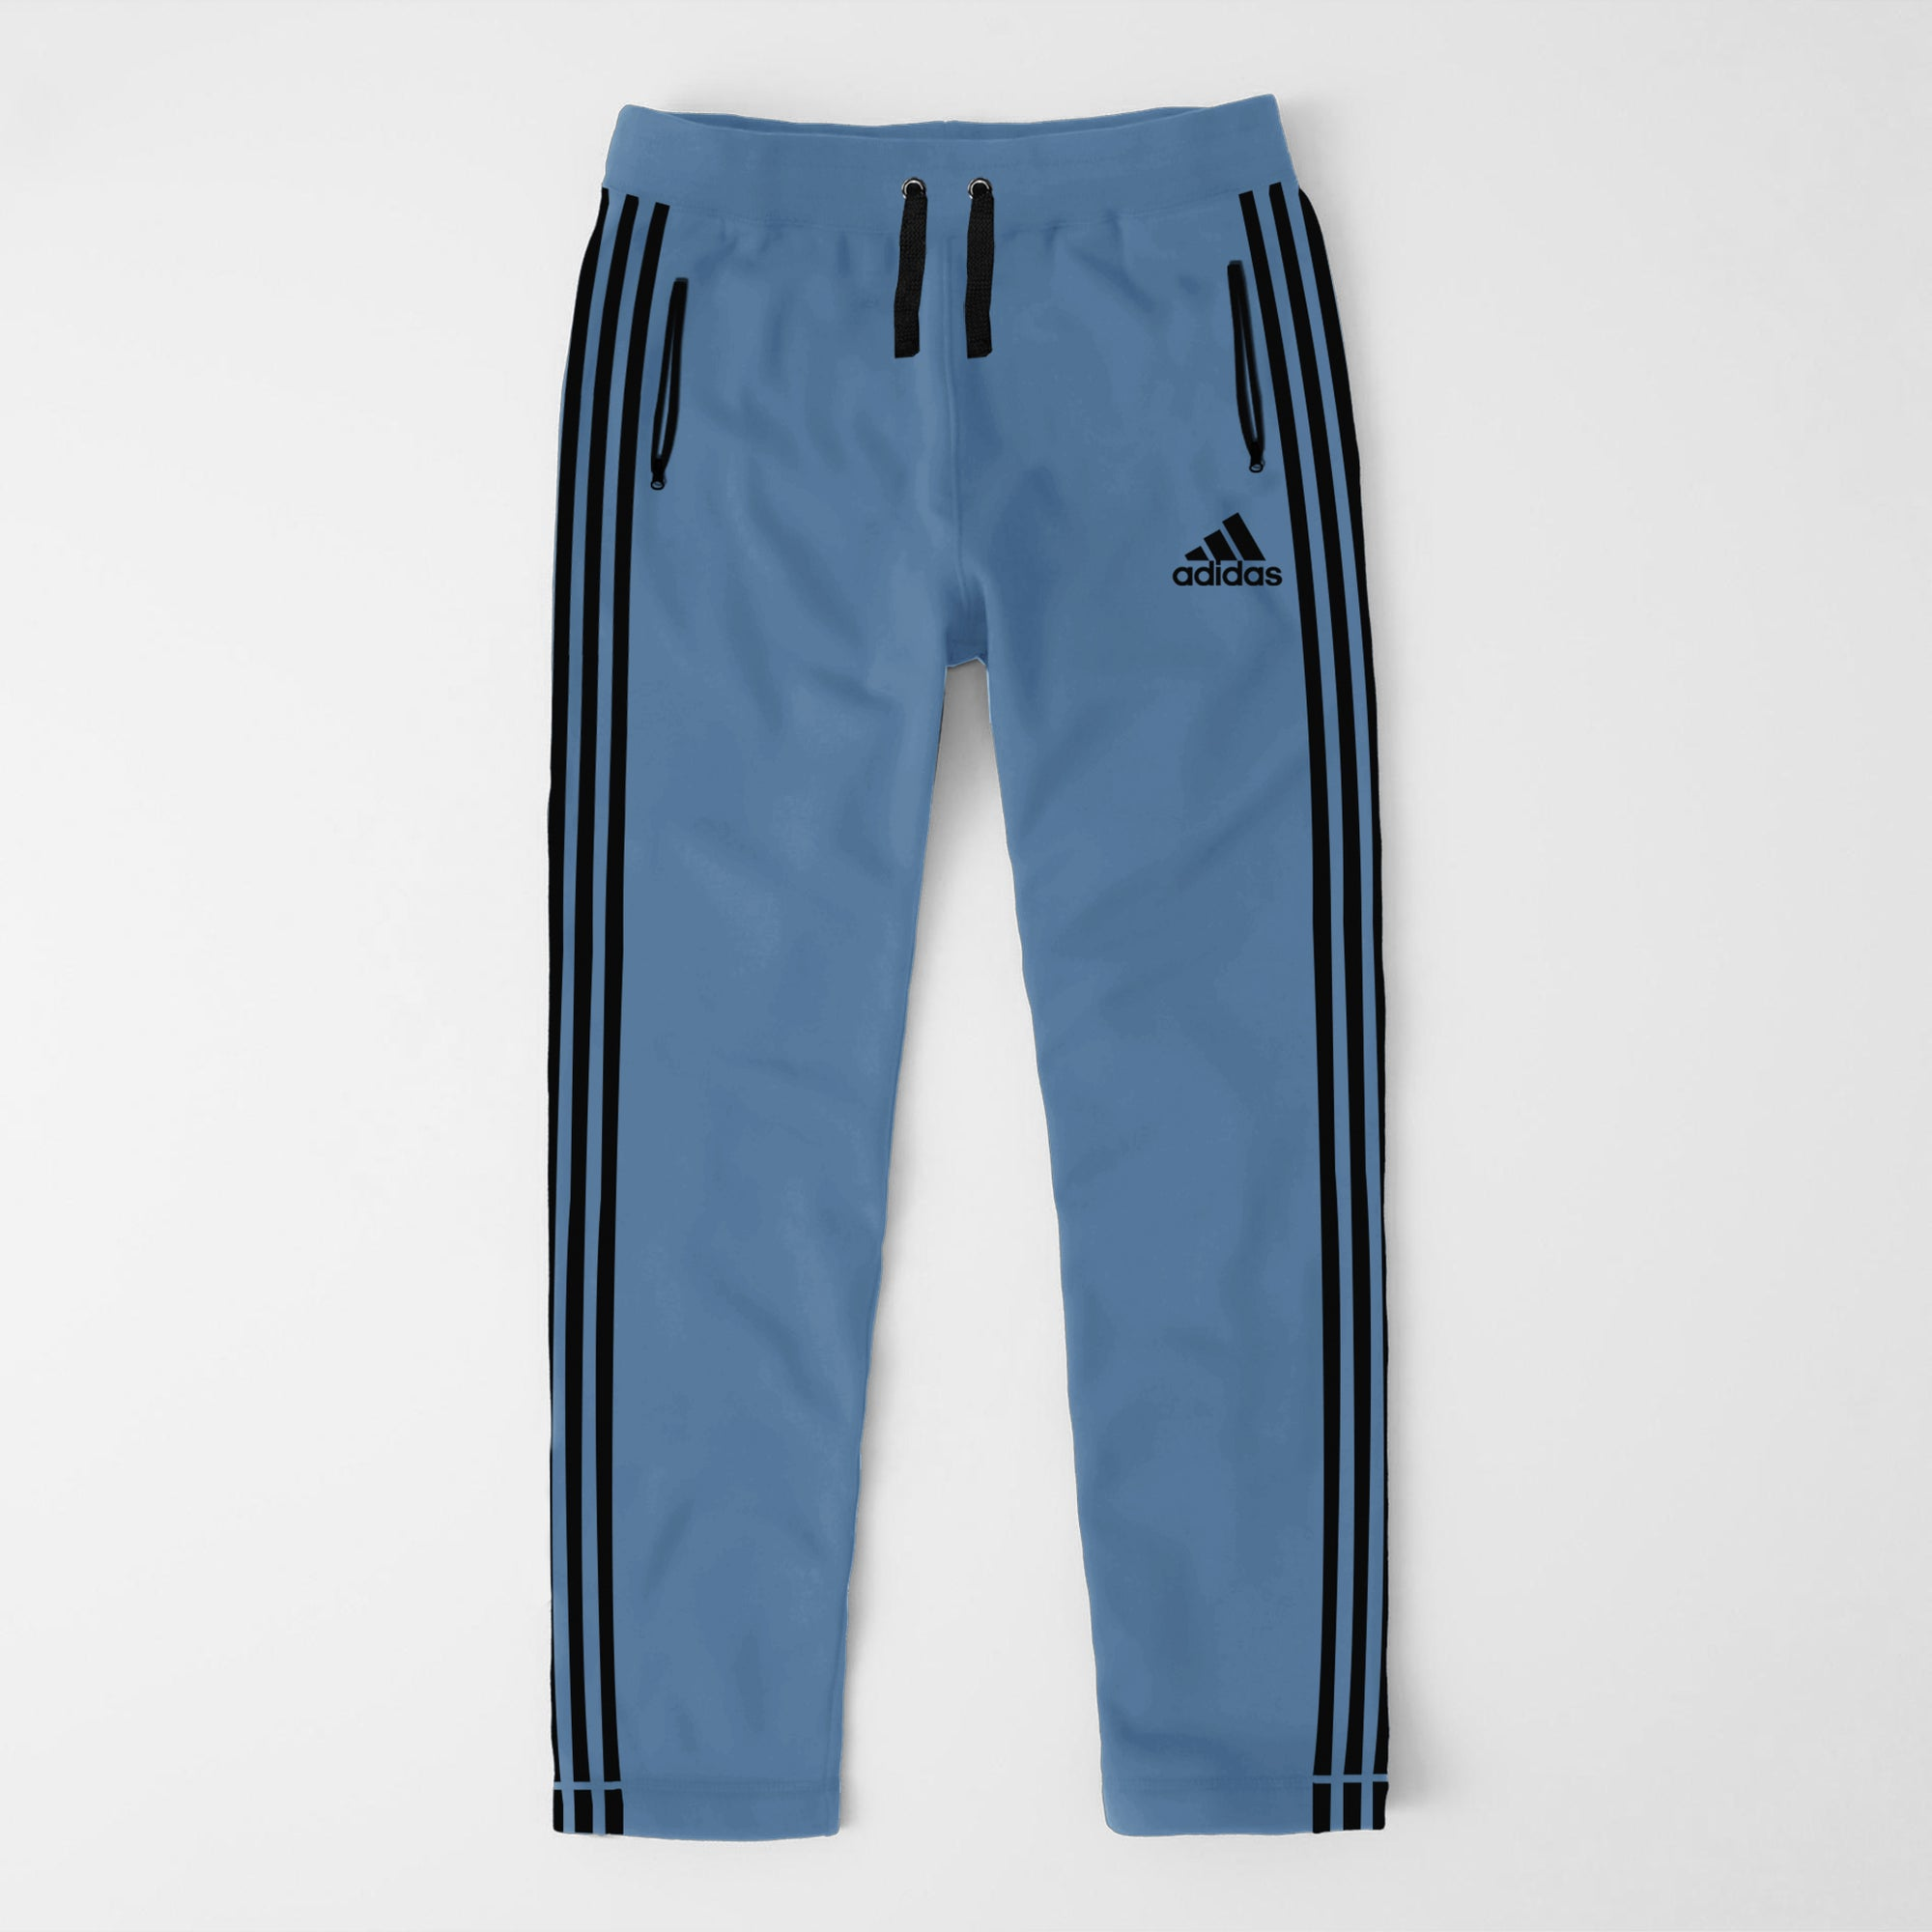 Adidas Single Jersey Regular Fit Trouser For Men-Dark Bord Blue With Black Stripes-SP457